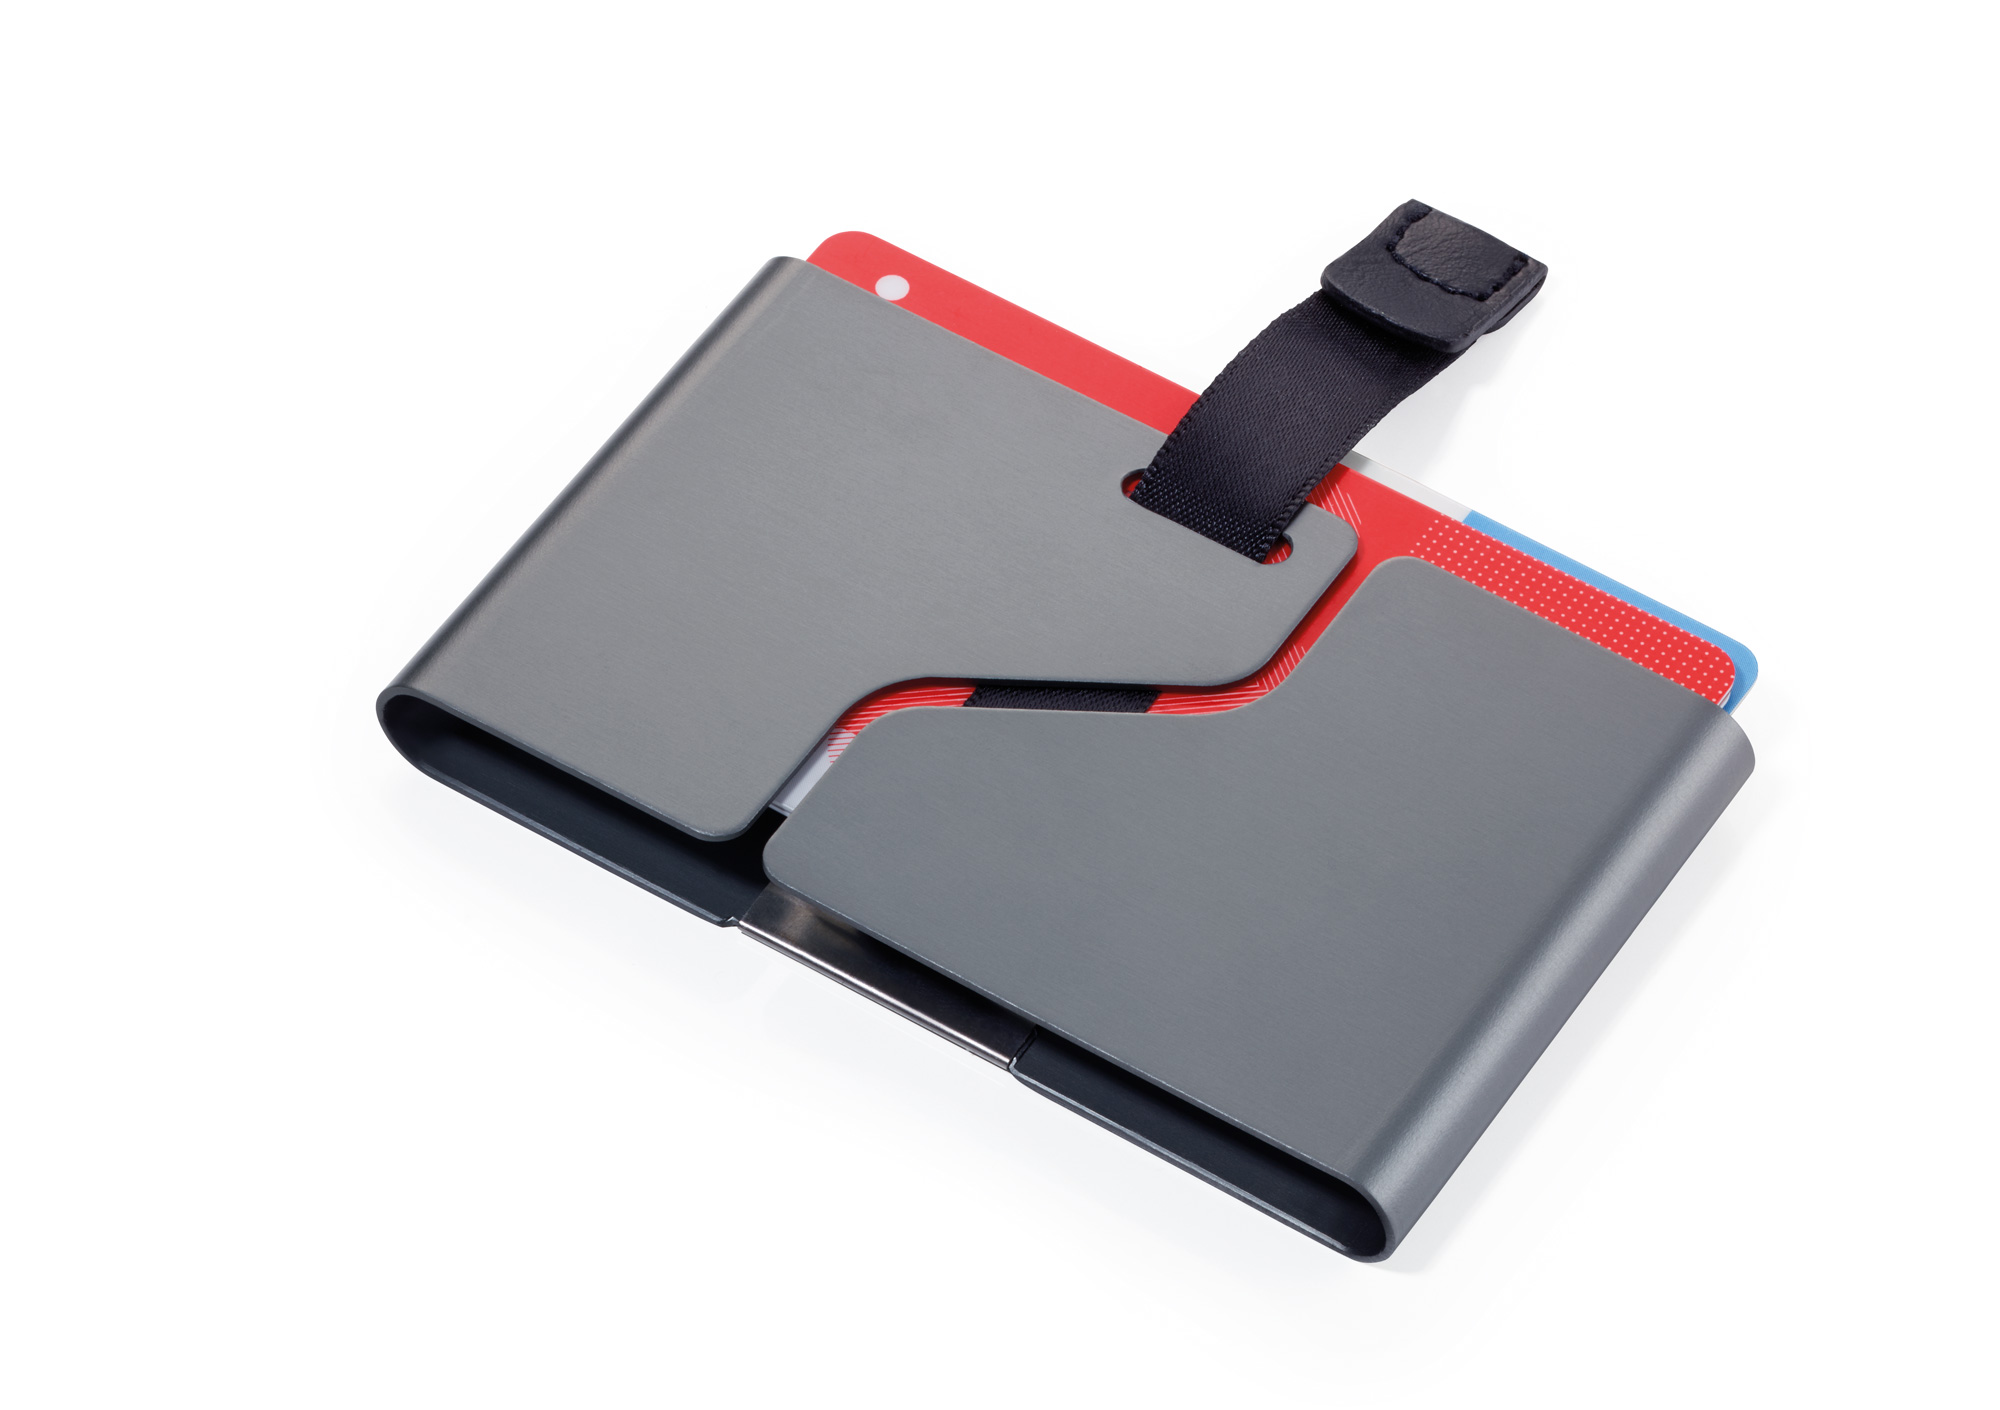 c22ea915e18db ... Credit card case with flap to pull out cards GET OUT - Credit Card Cases  ...